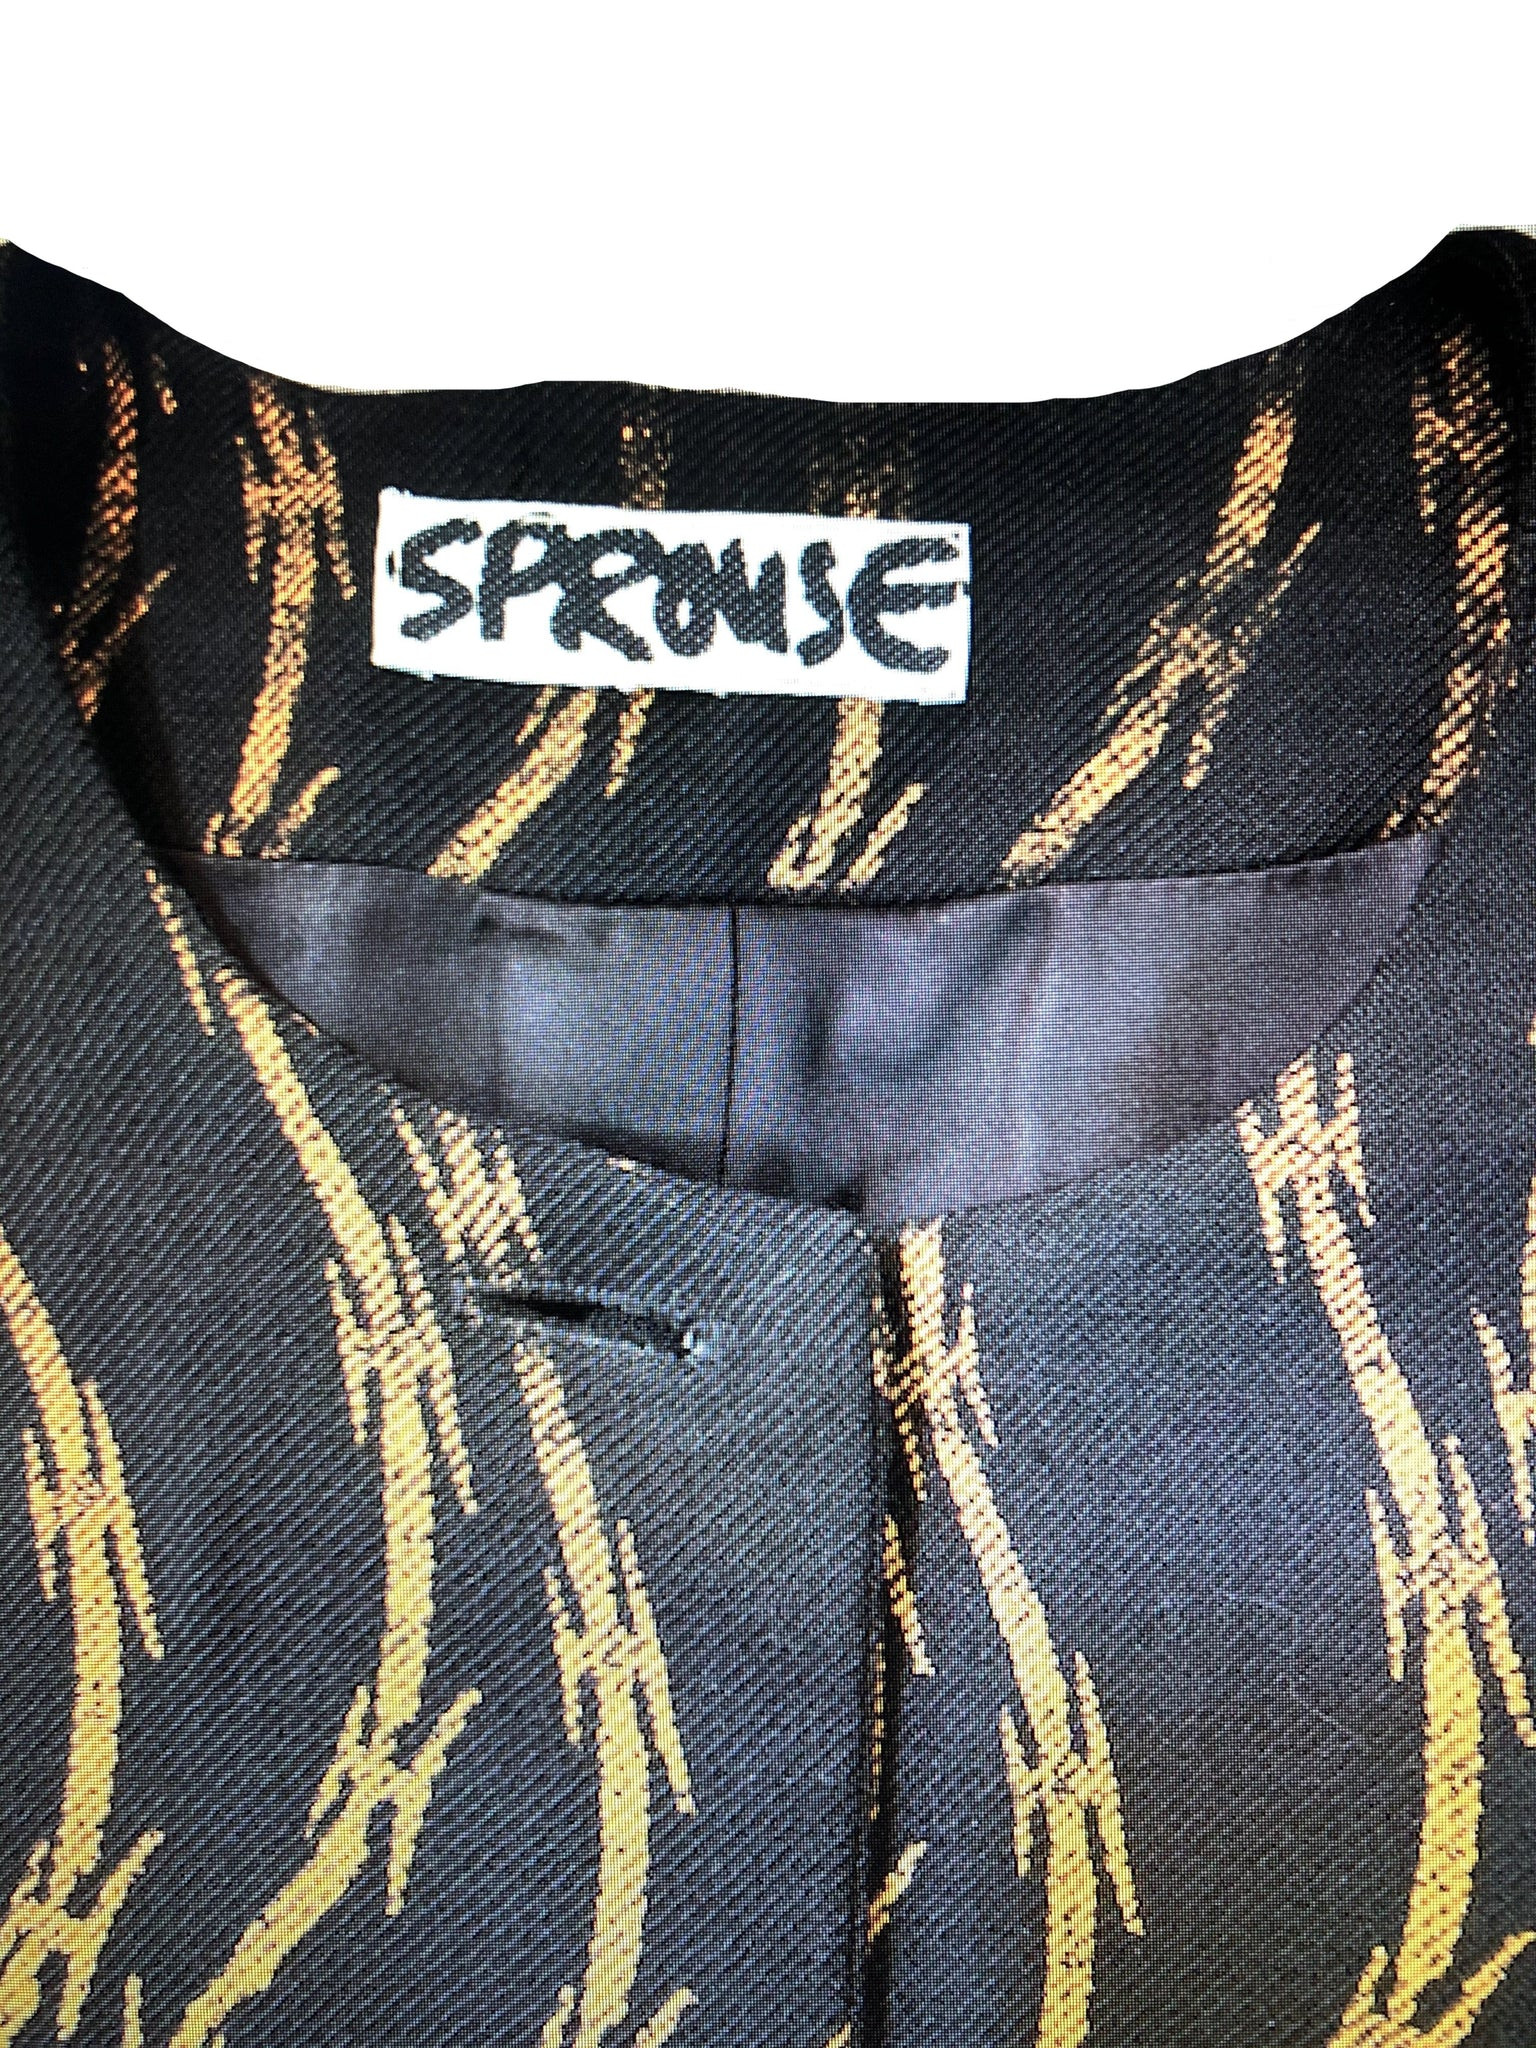 Stephen Sprouse Iconic Barbed Wire Print Jacket LABEL 4 of 4